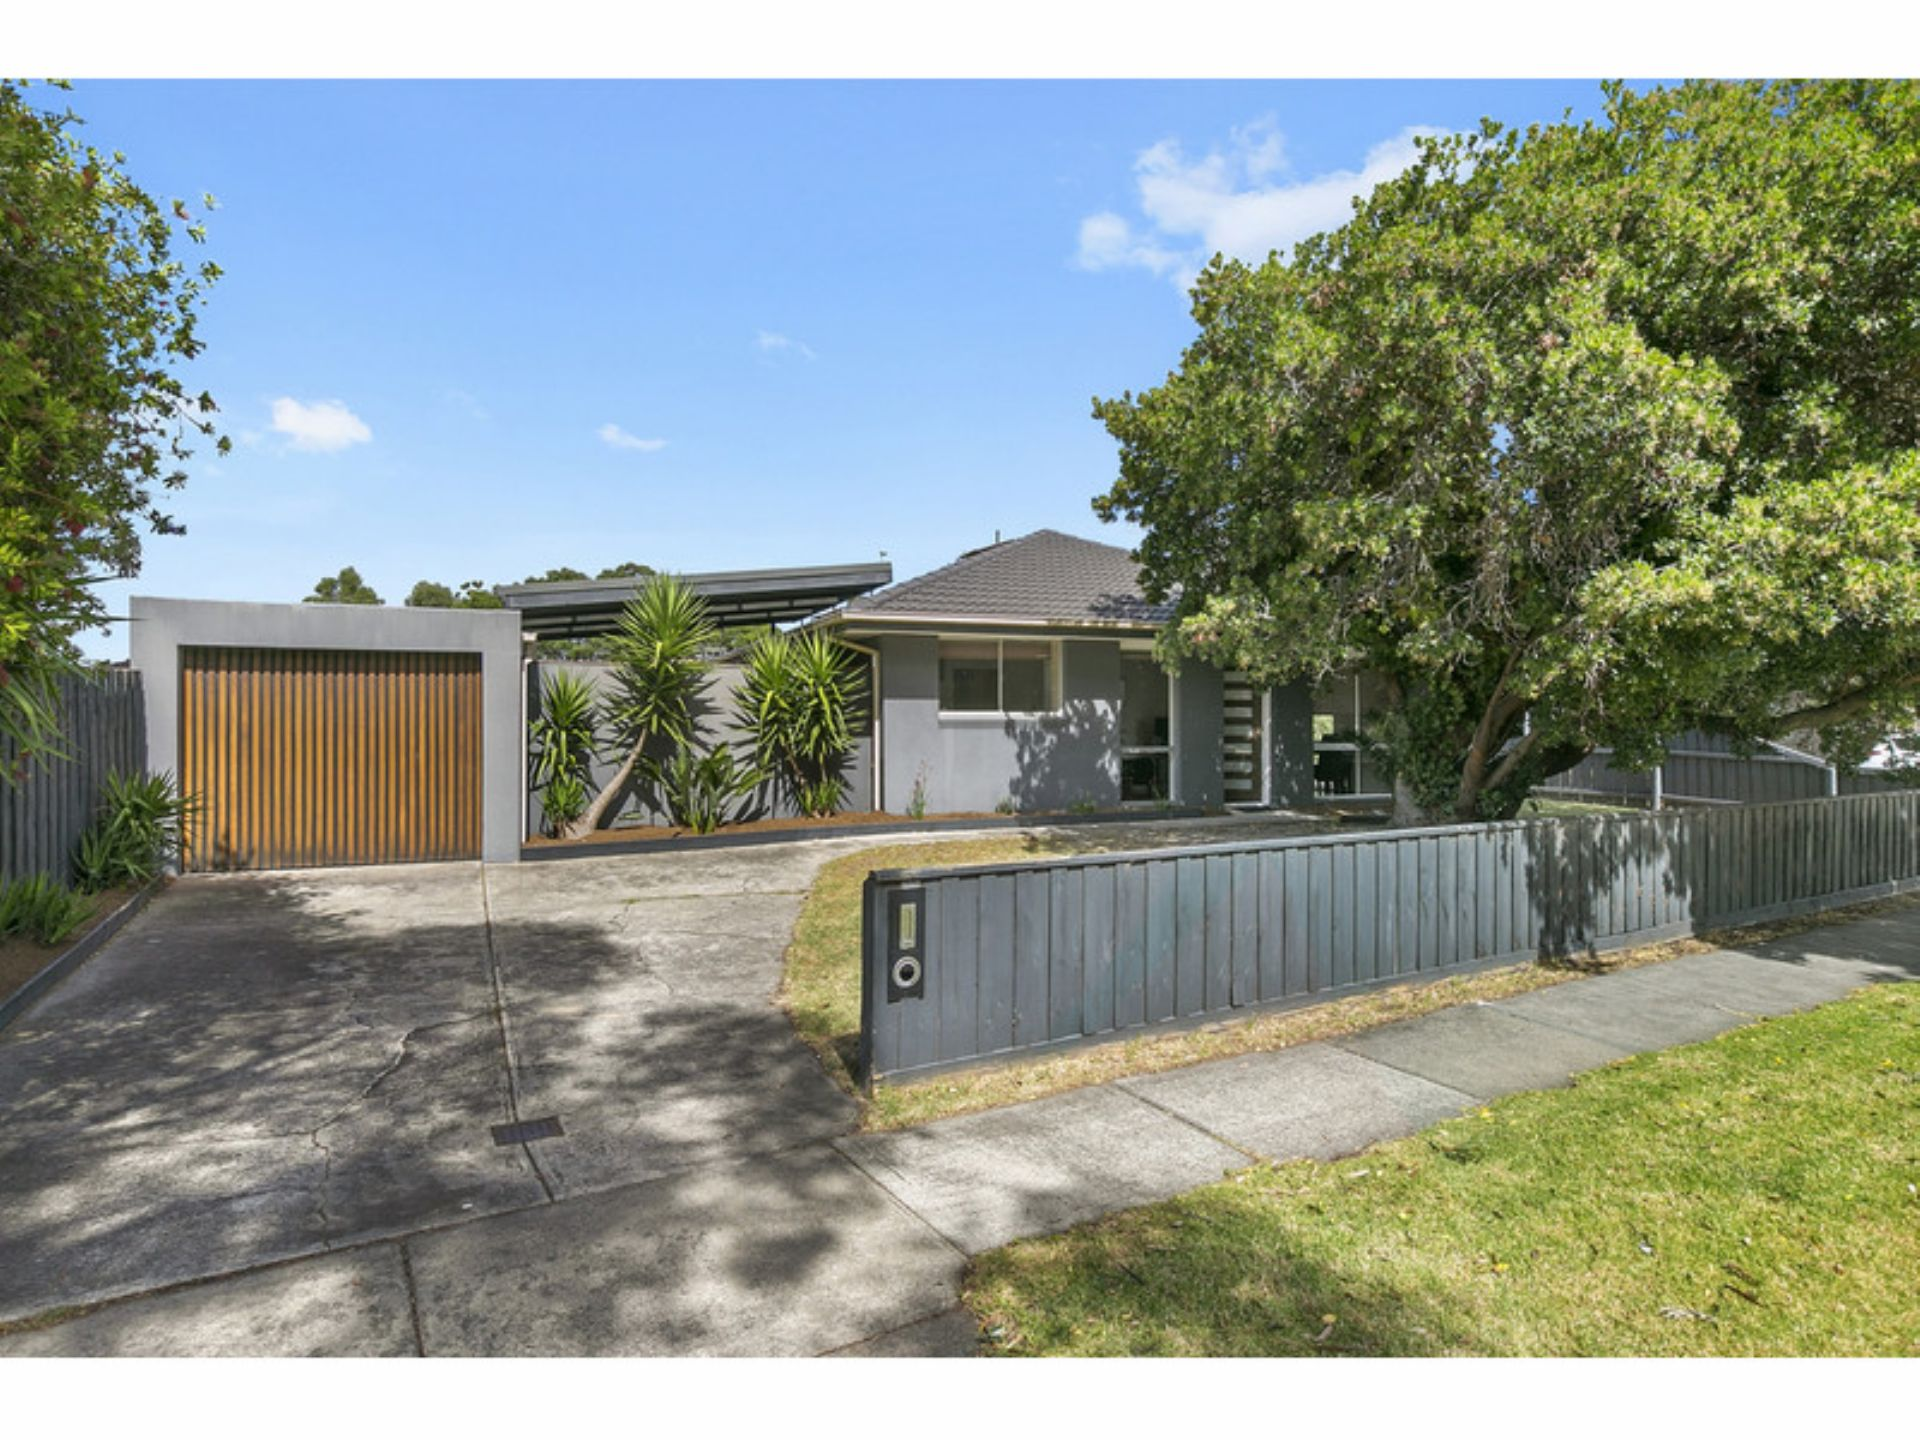 1/28-30 Wisewould Avenue, SEAFORD, VIC, 3198 - Image